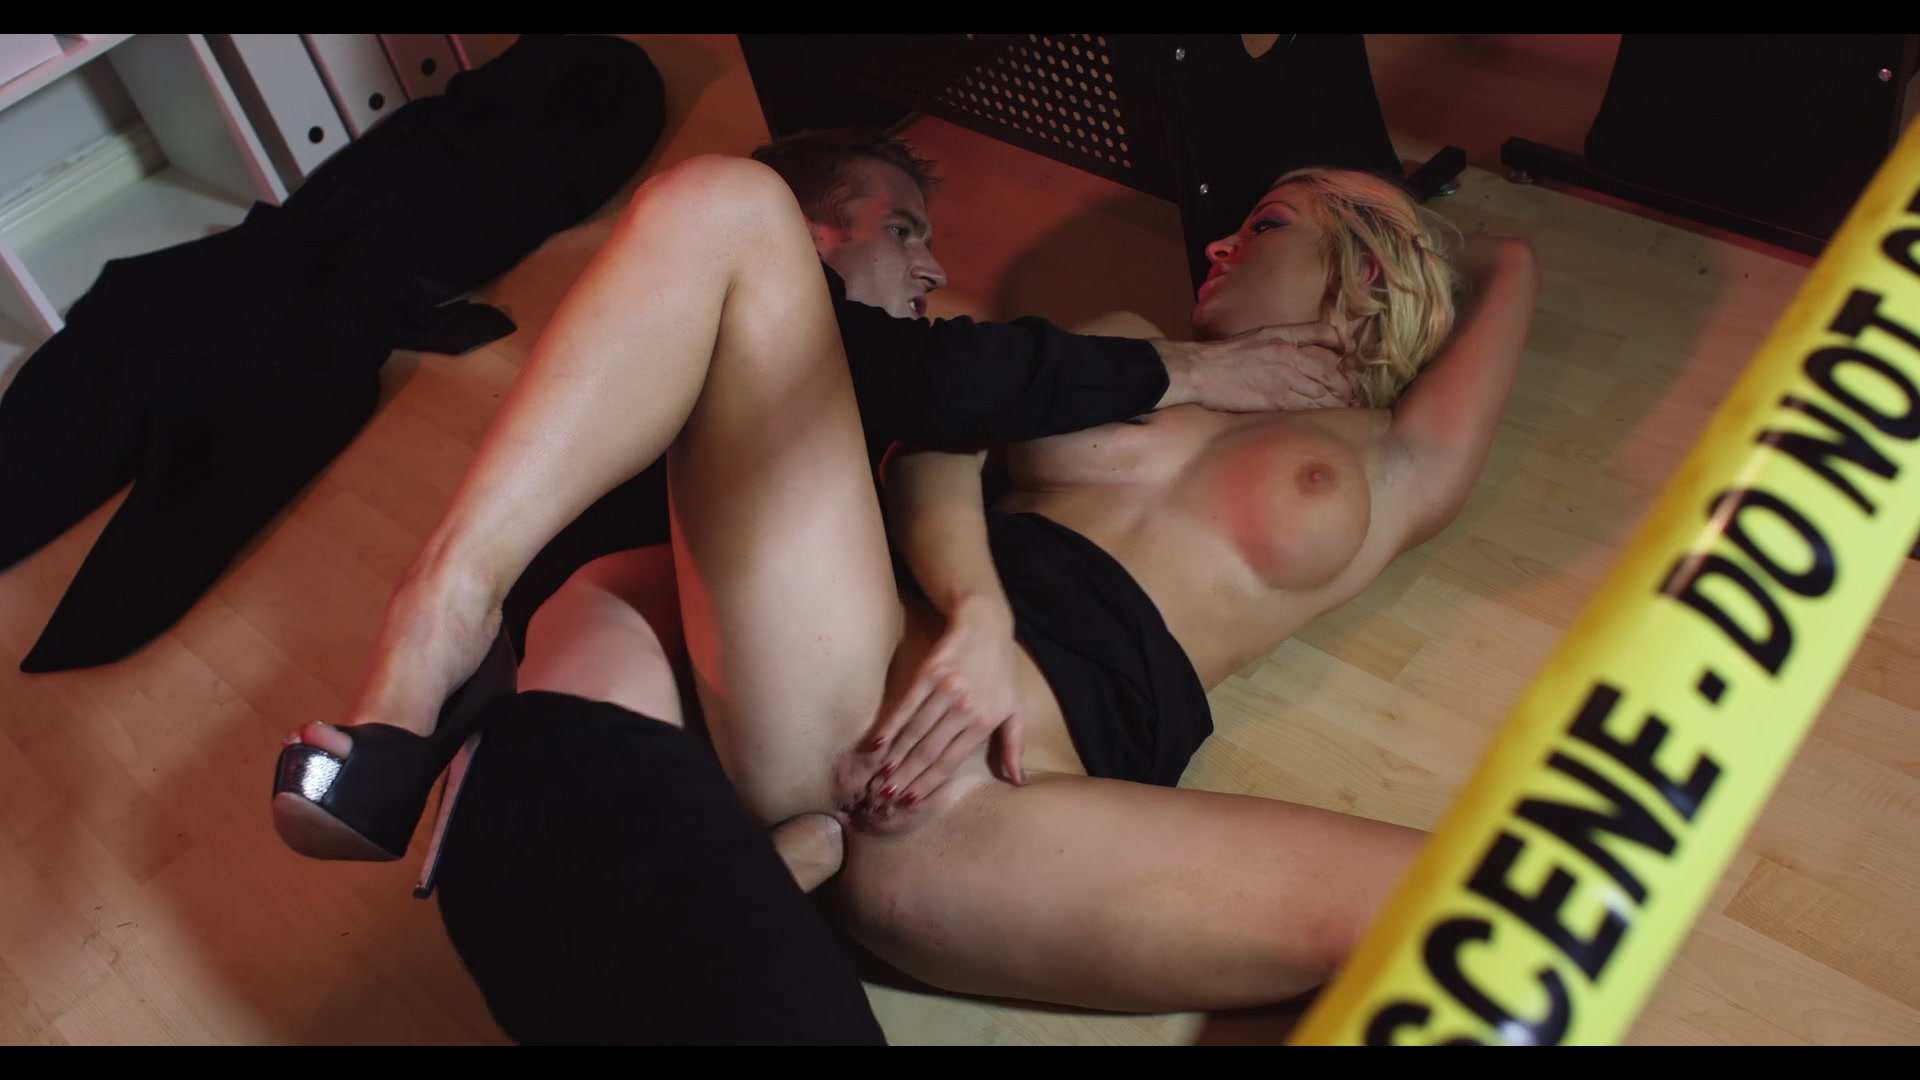 Scene with Sienna Day - image 16 out of 20